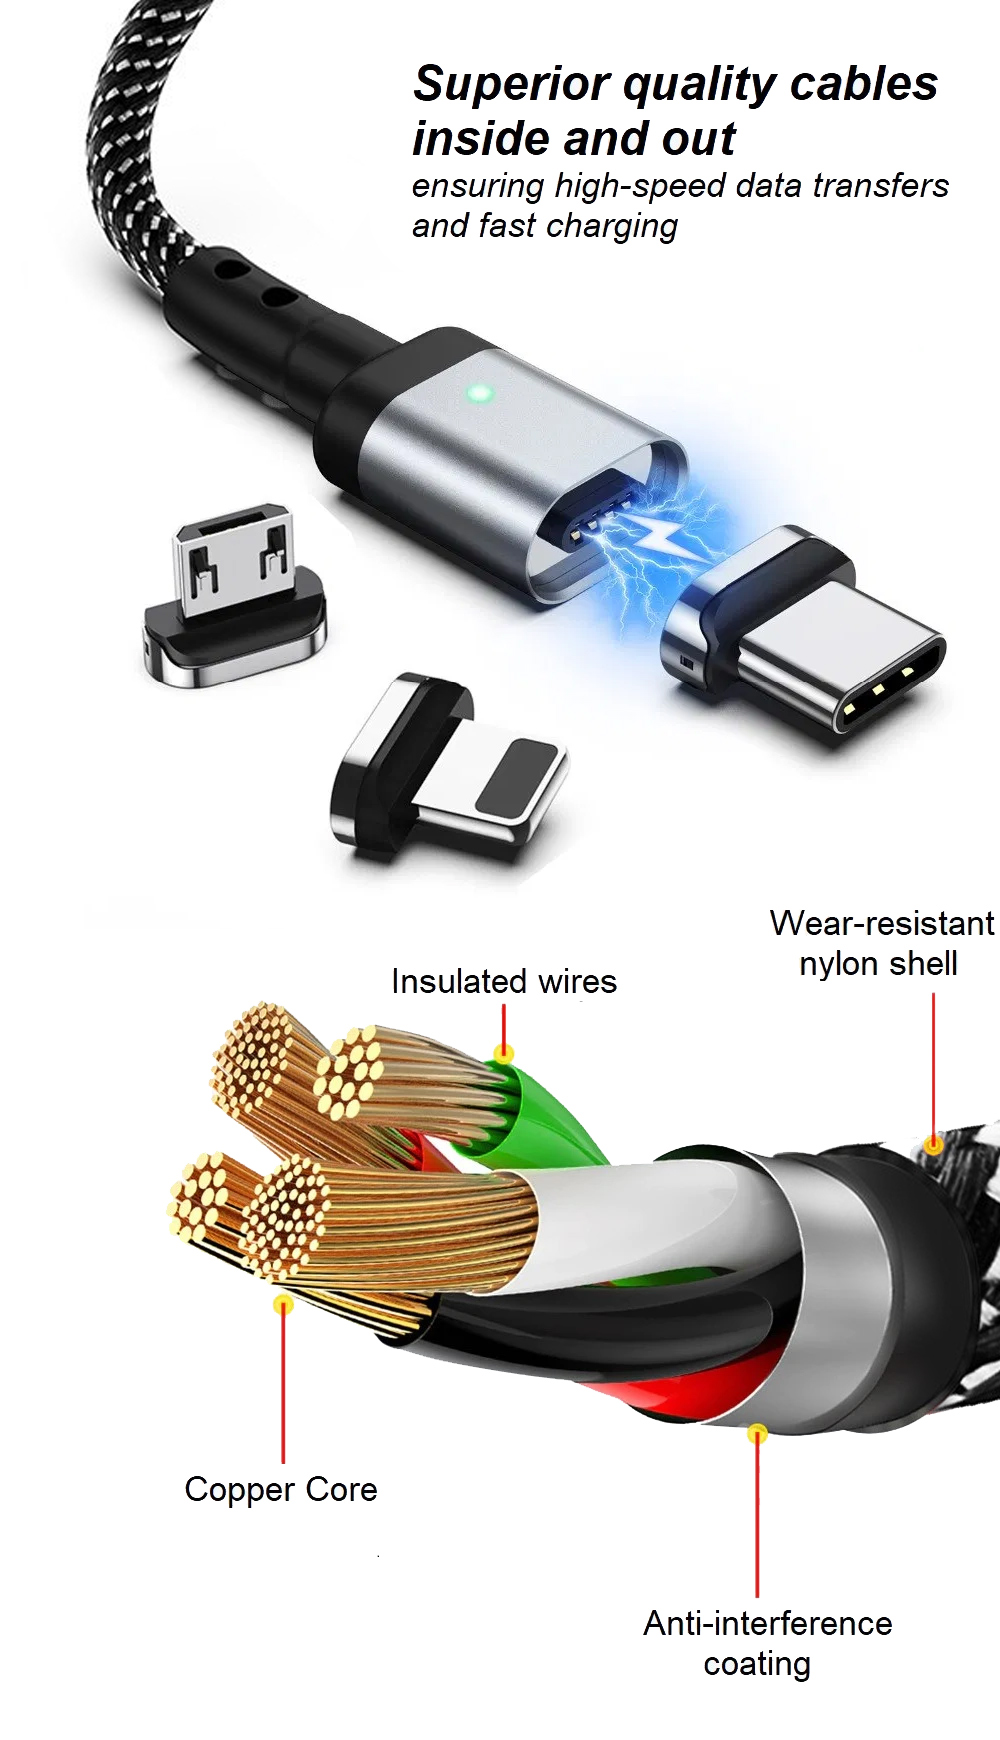 Request a Sample - Magnetic USB to Micro USB/Type C/iPhone cable